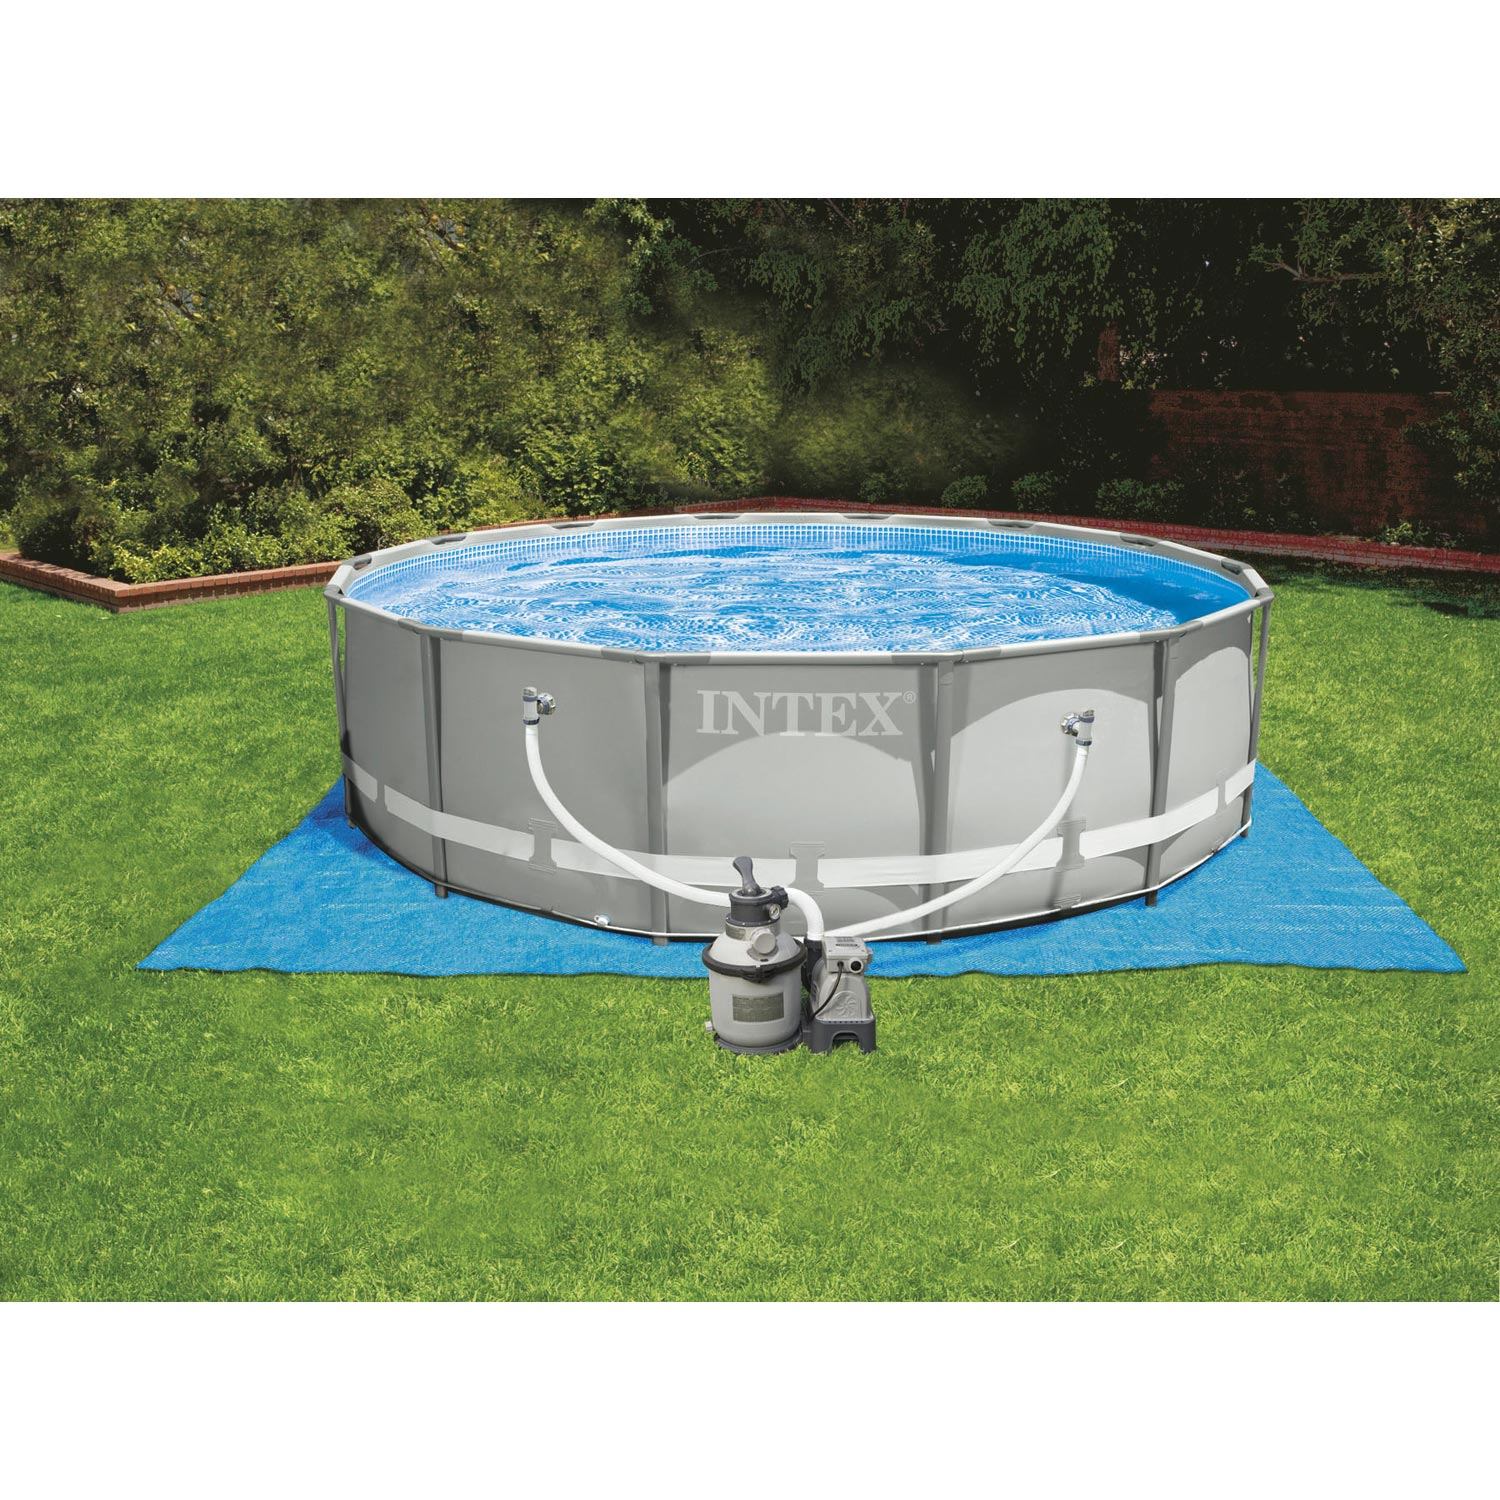 Piscine hors sol autoportante tubulaire ultra frame intex for Piscine tubulaire